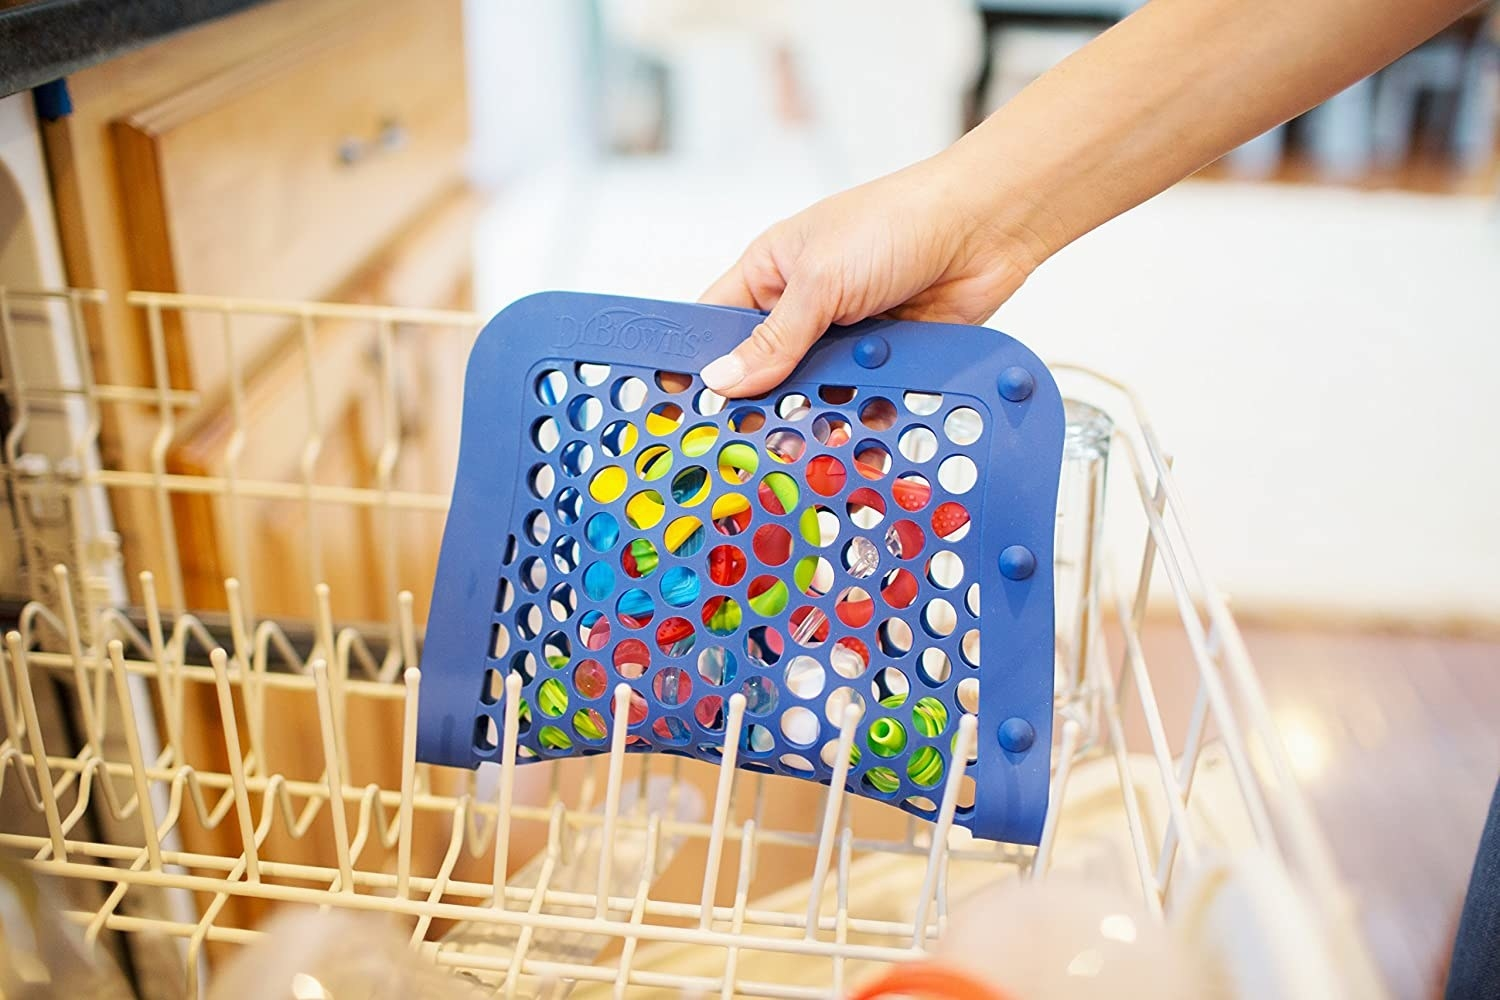 A person placing the filled pouch onto the top rack of their dishwasher